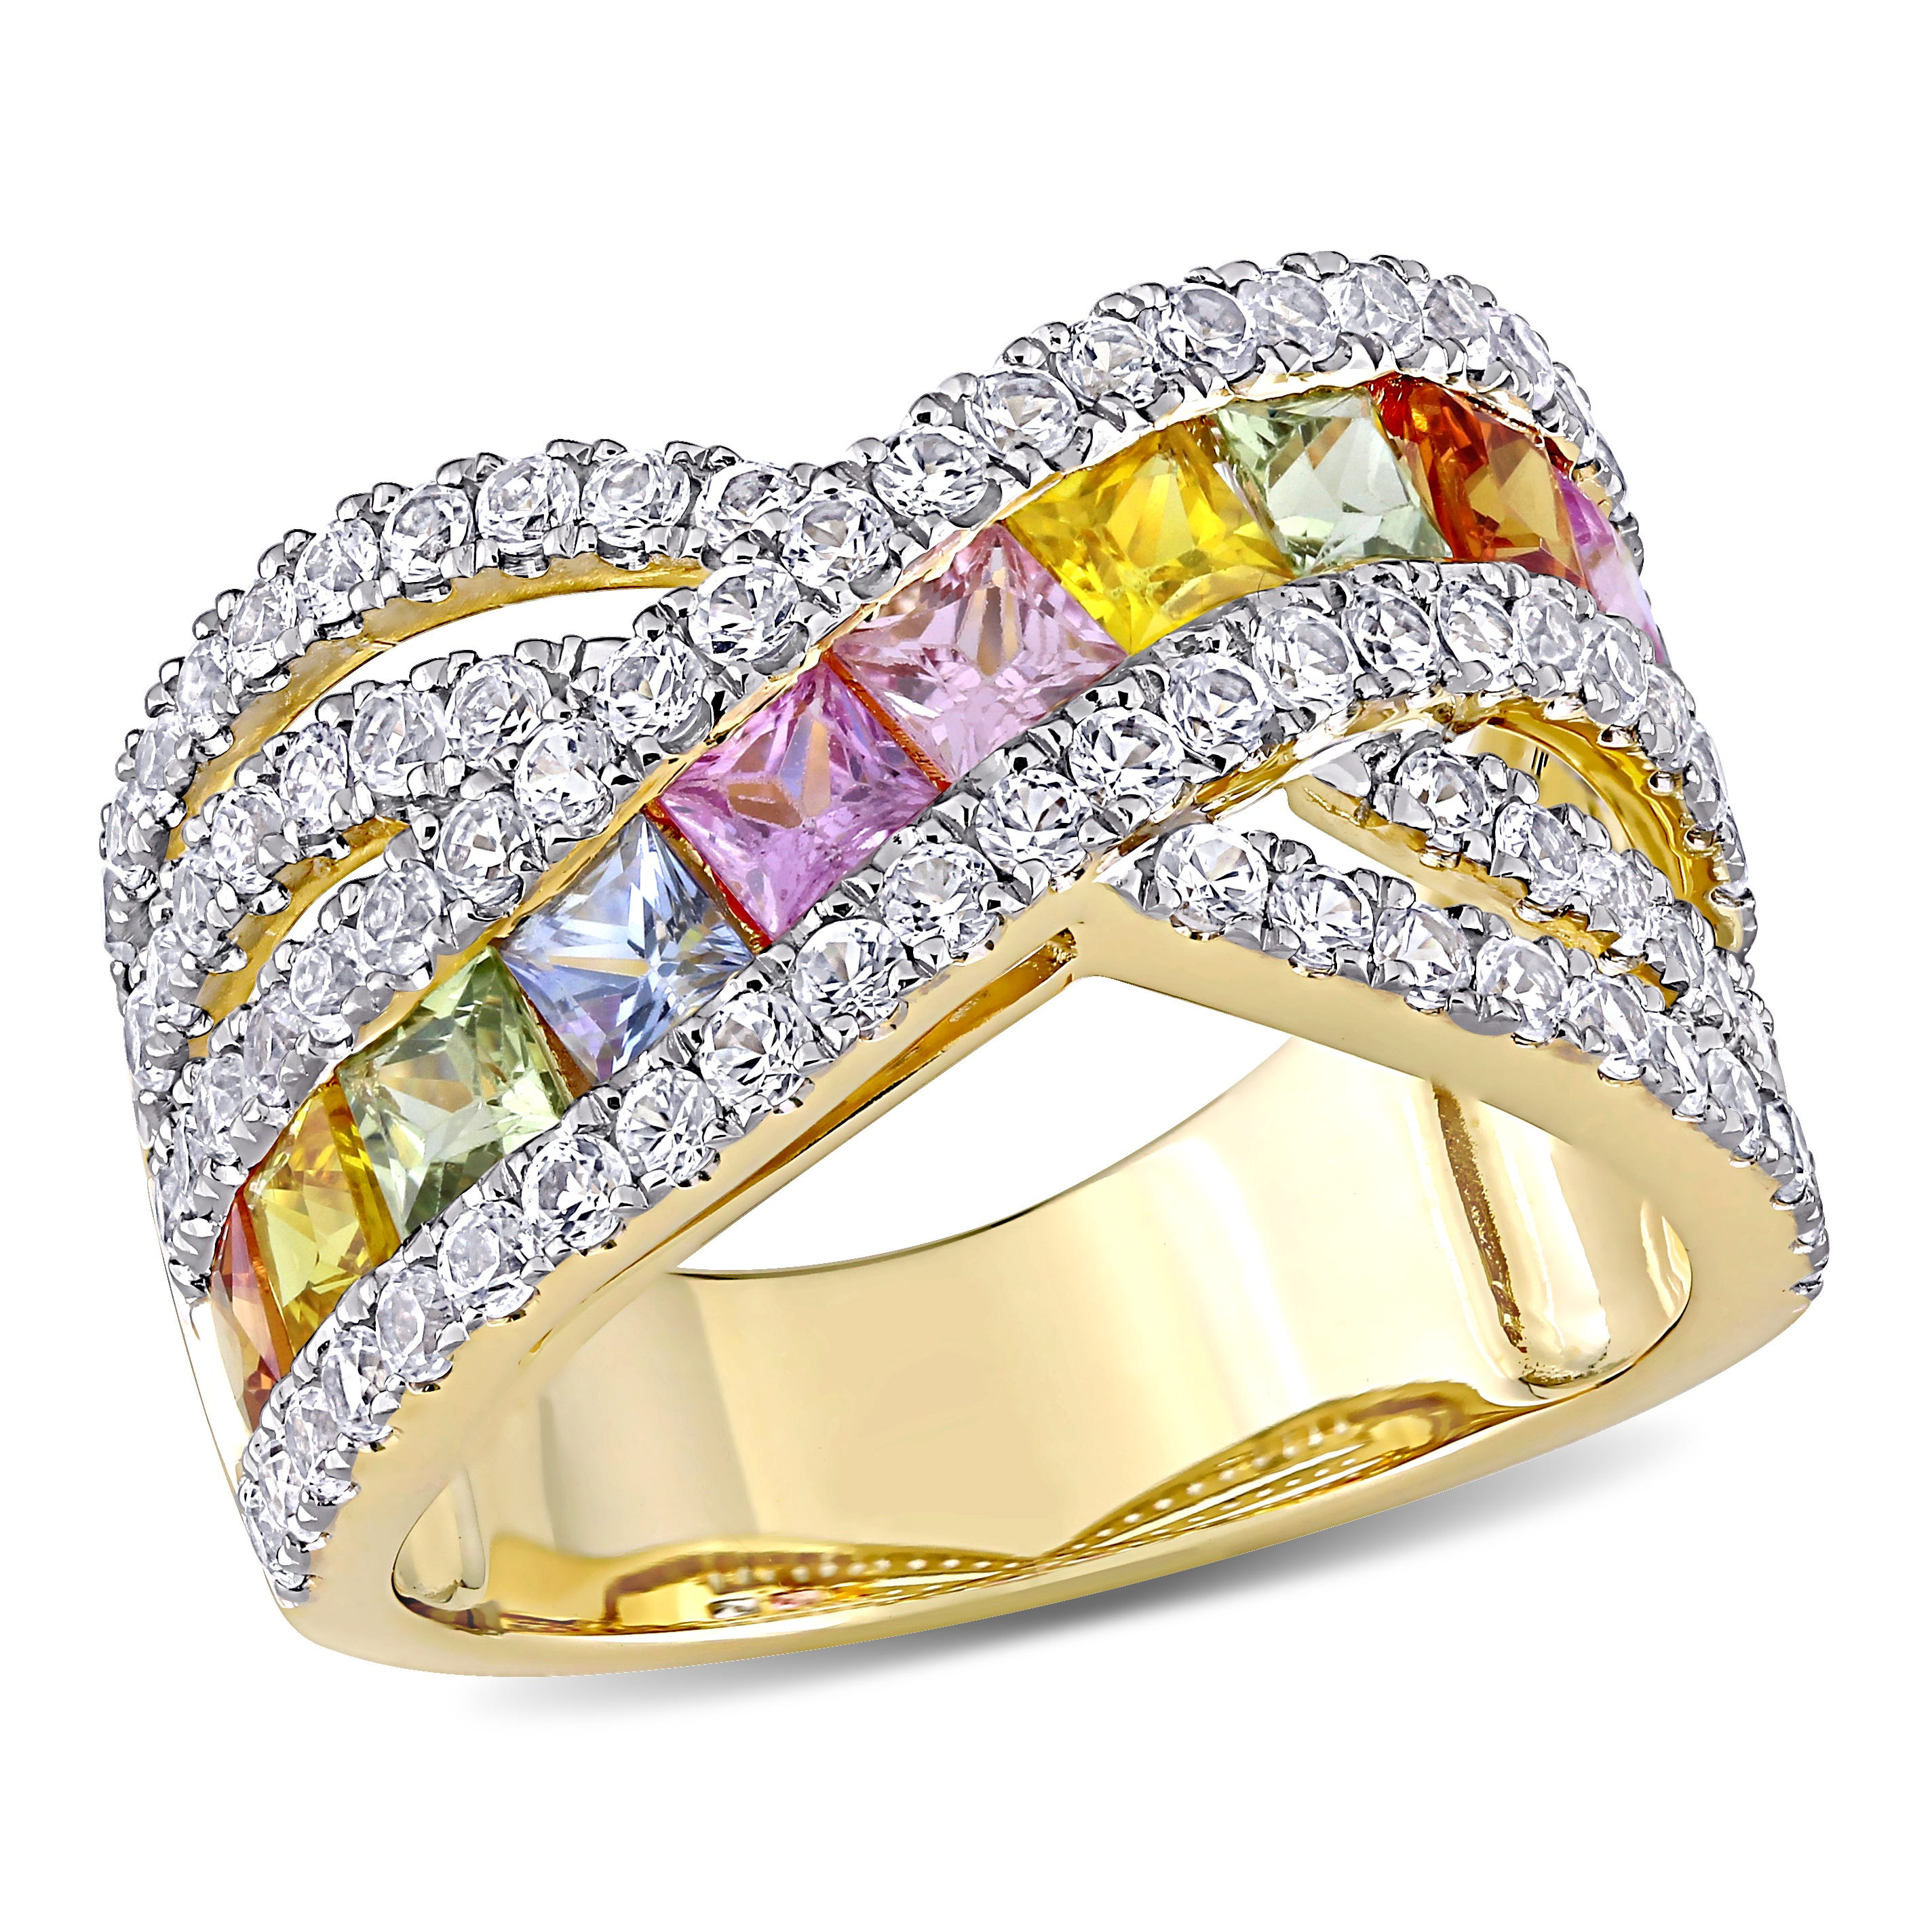 Rainbow Created Sapphire & Diamond Princess Cut Ring in 14k Yellow Gold